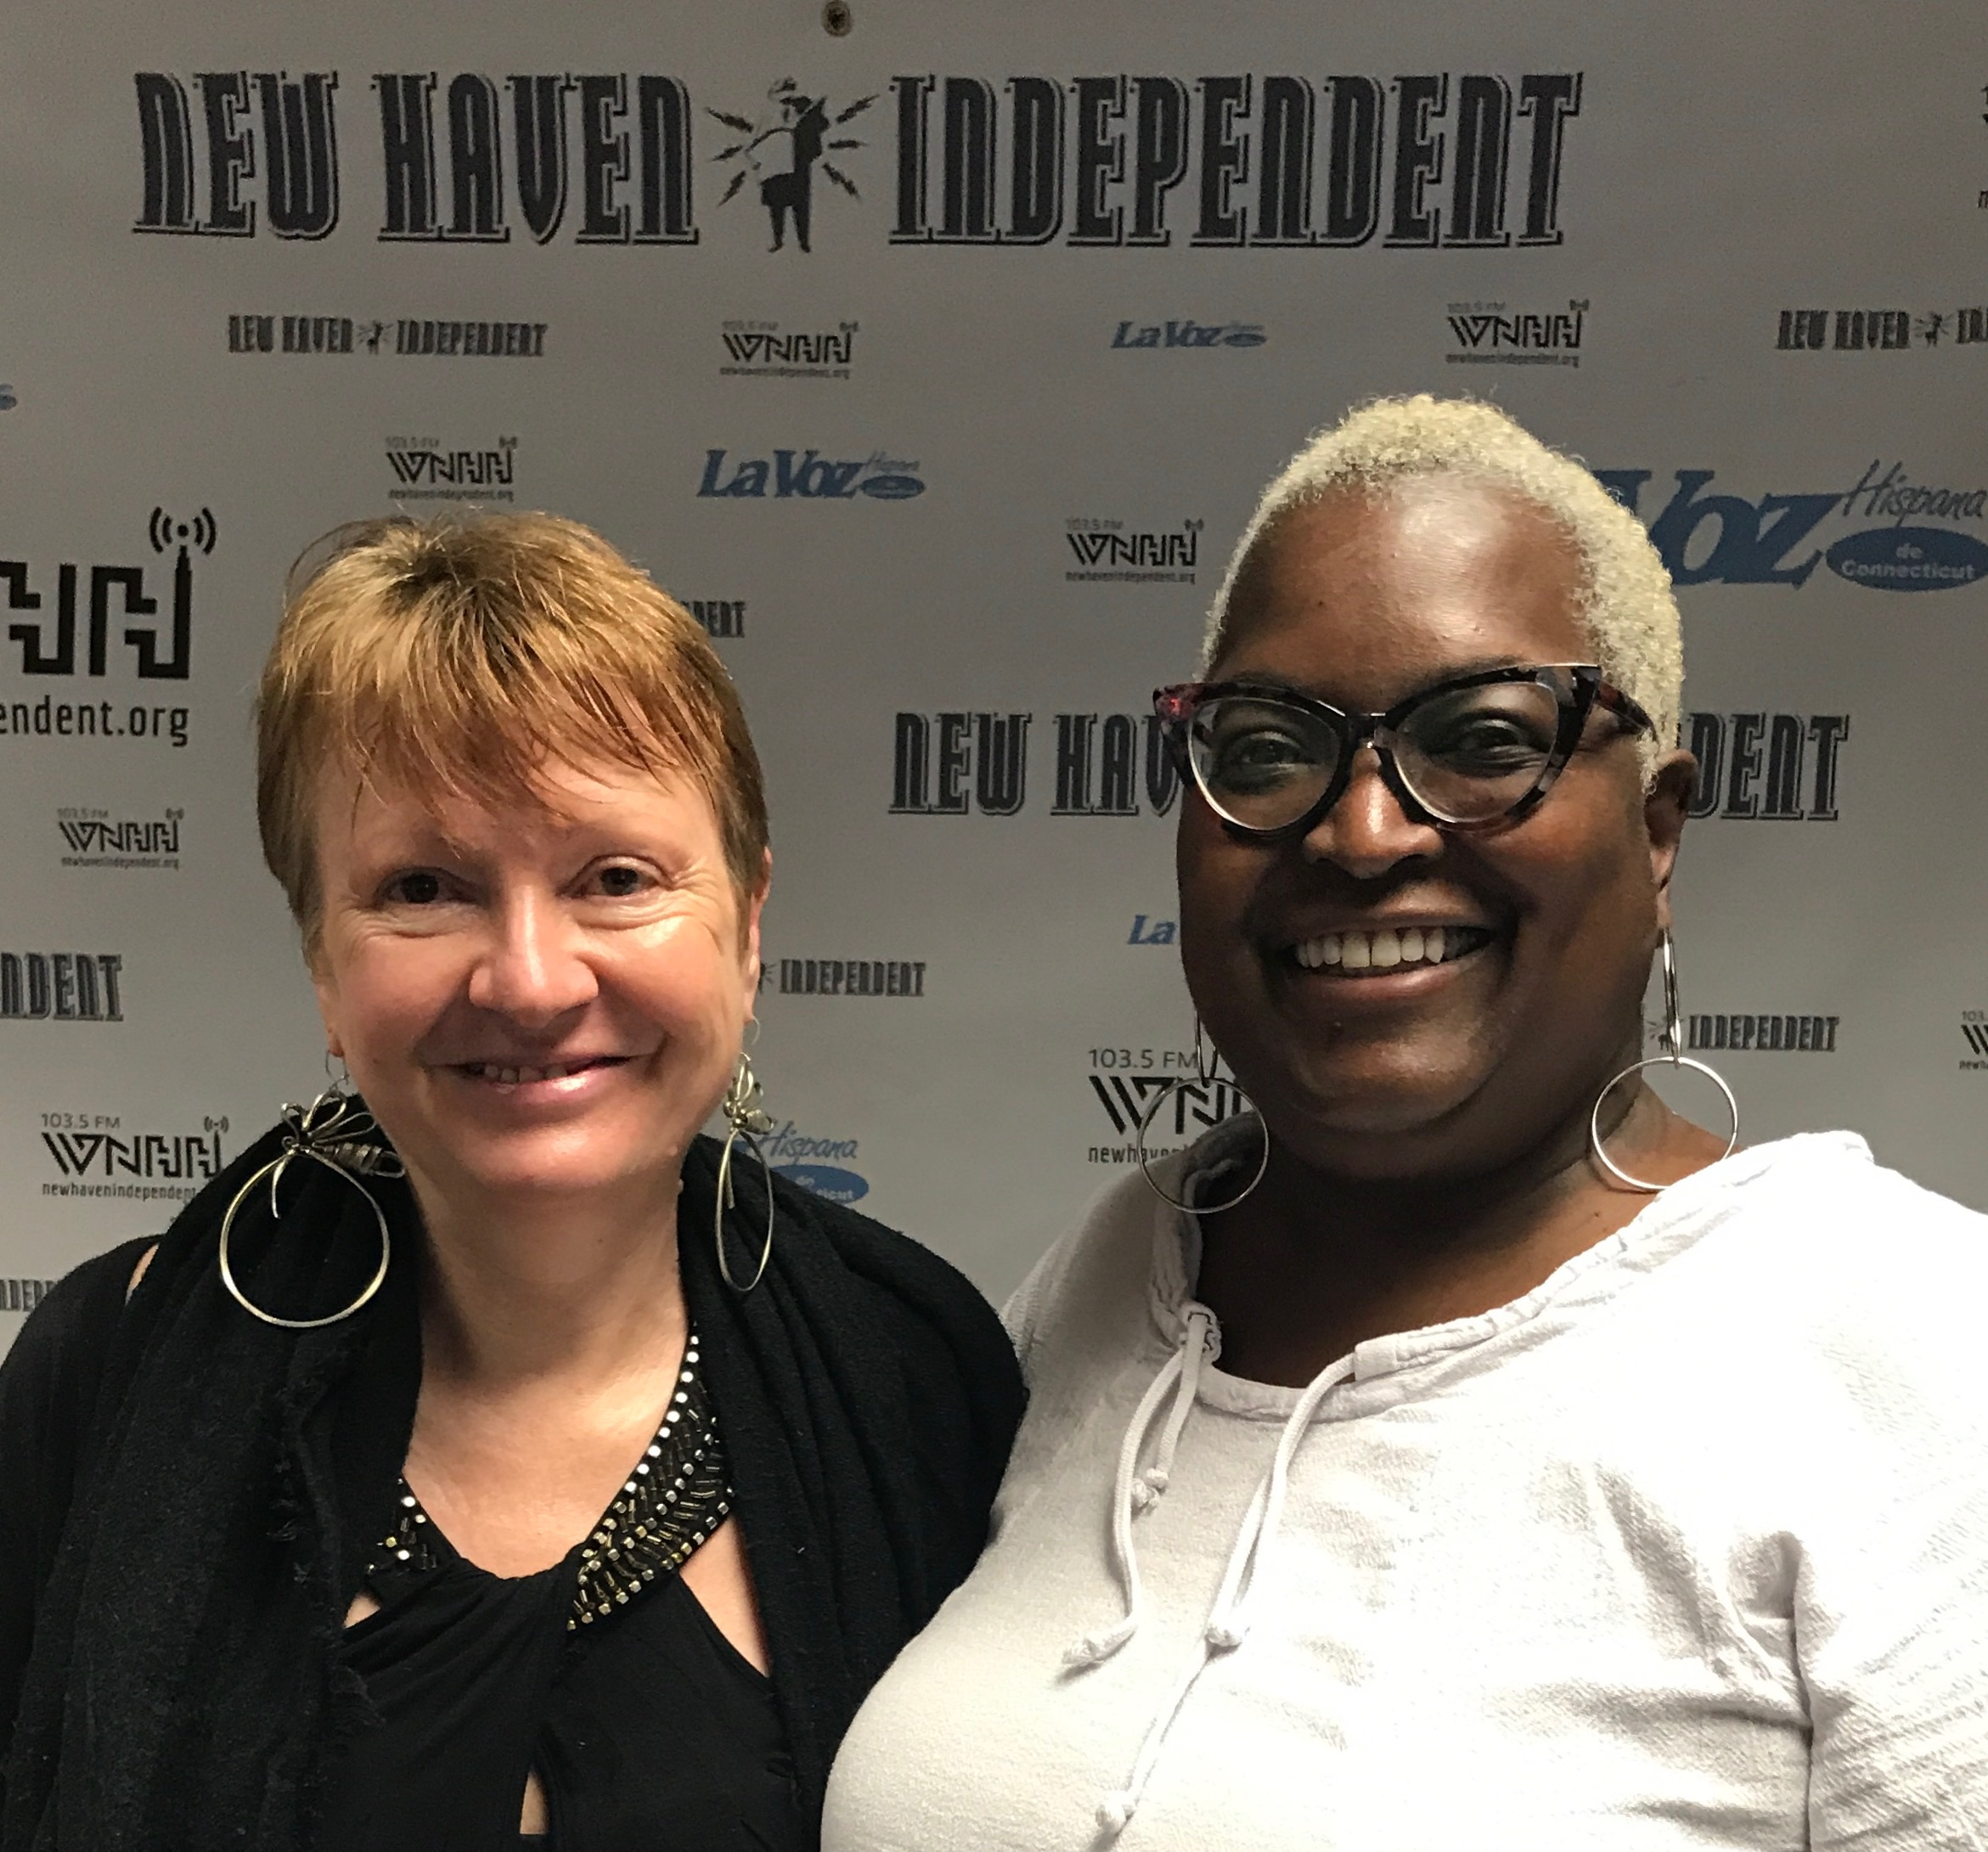 Host Babz Rawls-Ivy talks about CT Fashion Week and Tinaliah Fashion Sho at New Haven City Hall on 9/22/17 6pm-8:30pm, with guest Catherine Cazez-Wiley, Director,Instructor of Tinaliah. For more information or to buy tickets, visit www.styletinaliah.org